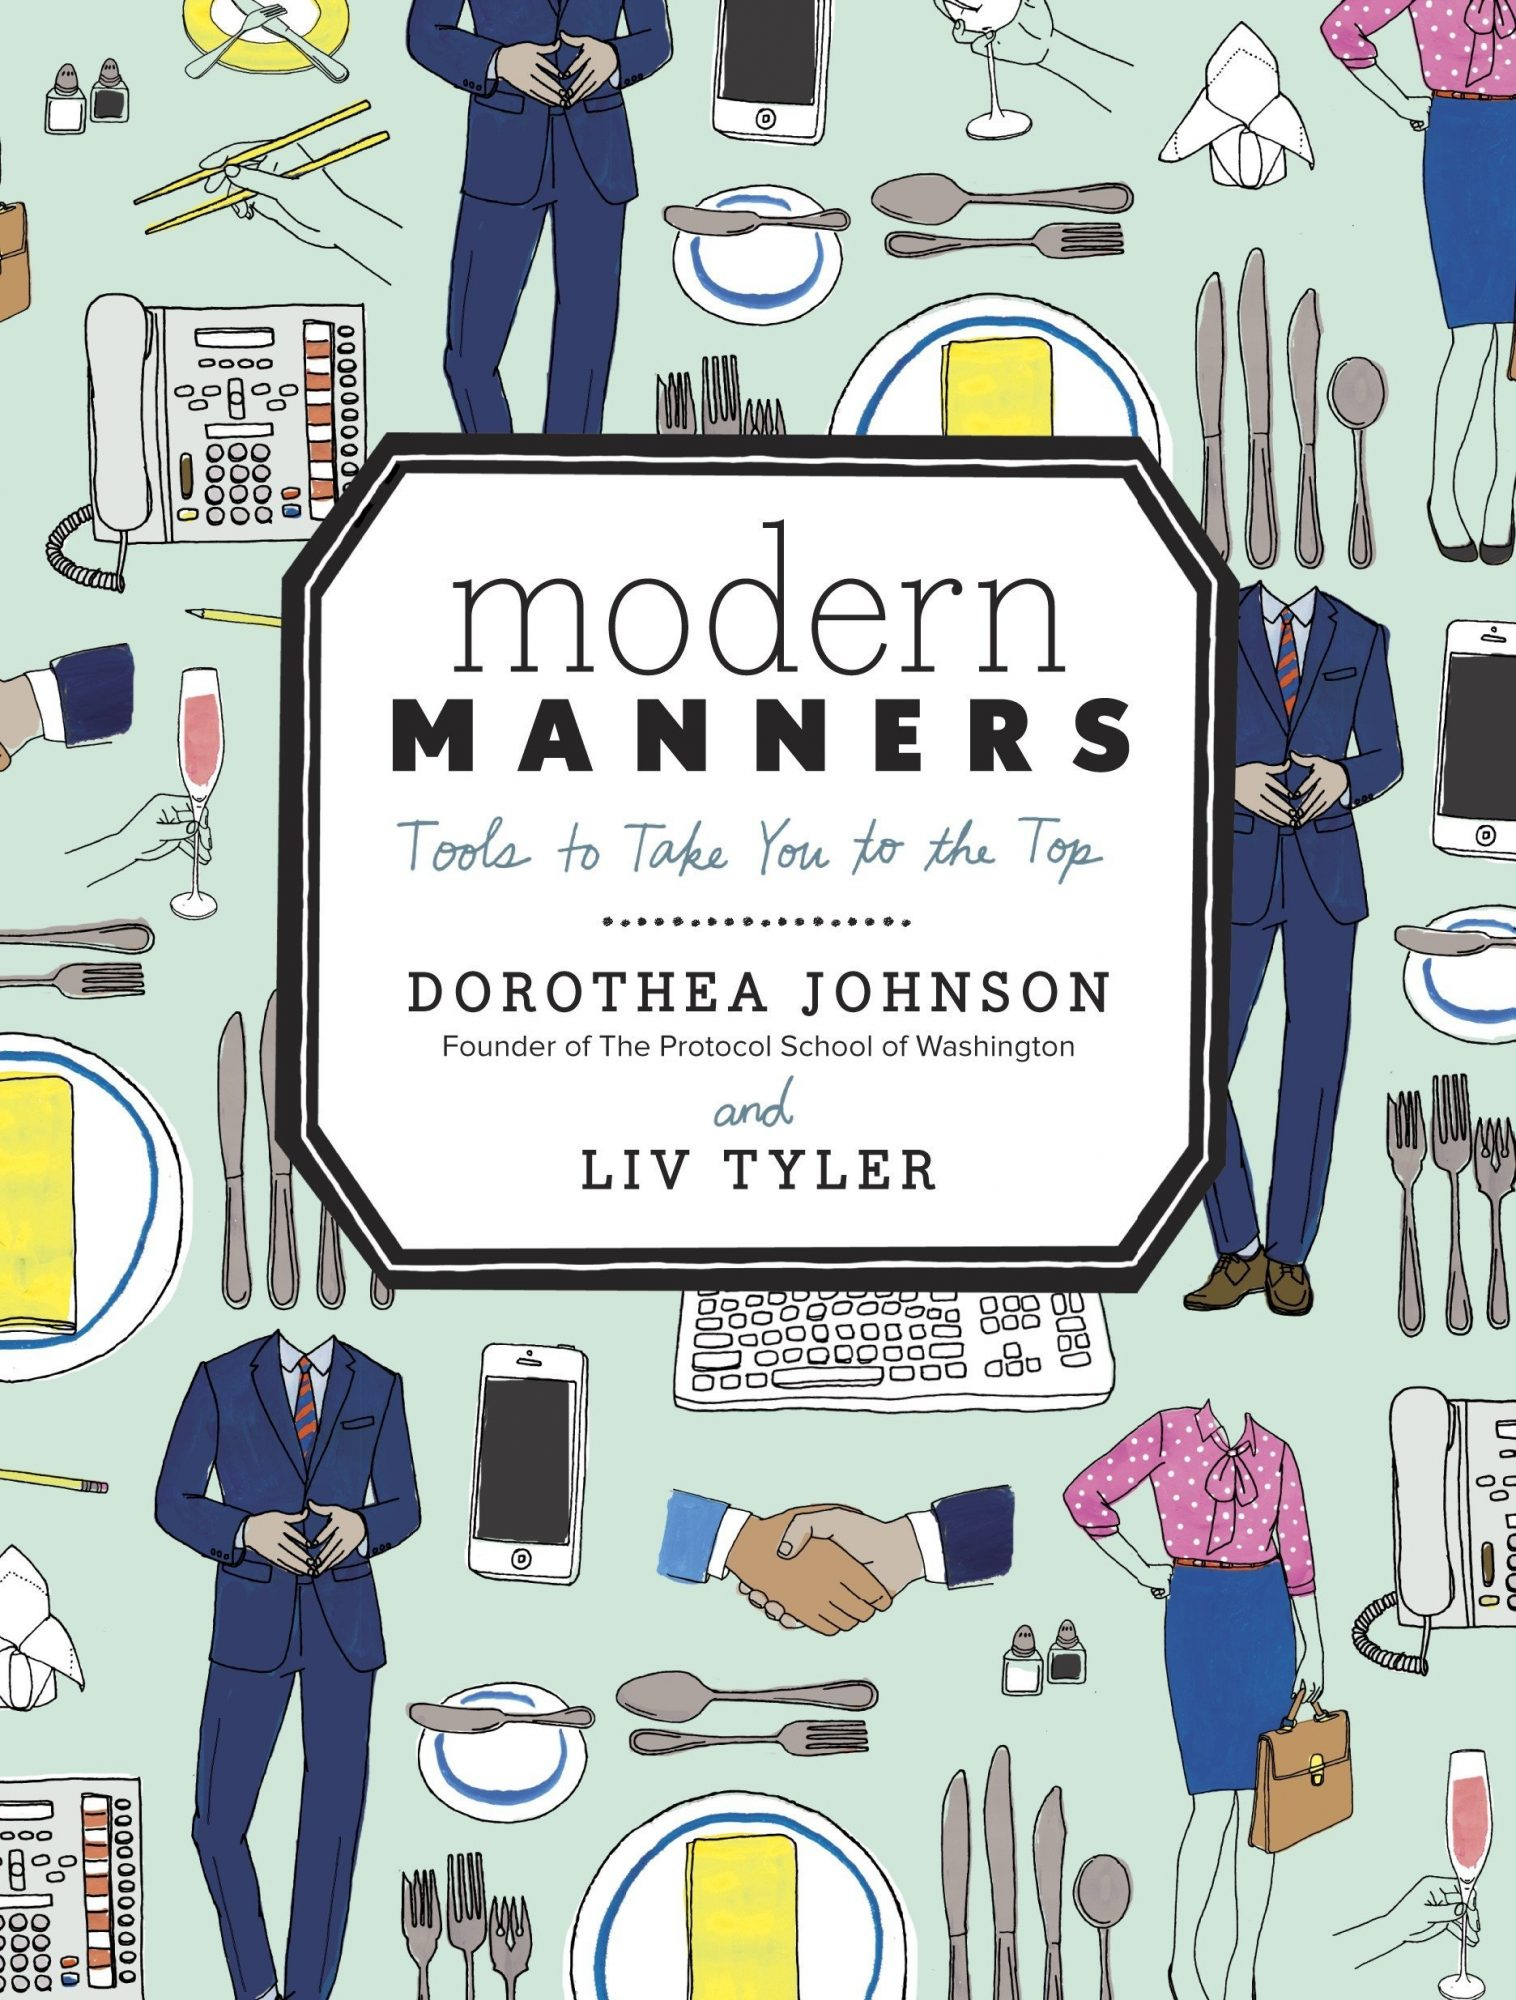 Modern Manners: Tools to Take You to the Top by Dorothea Johnson and Liv Tyler